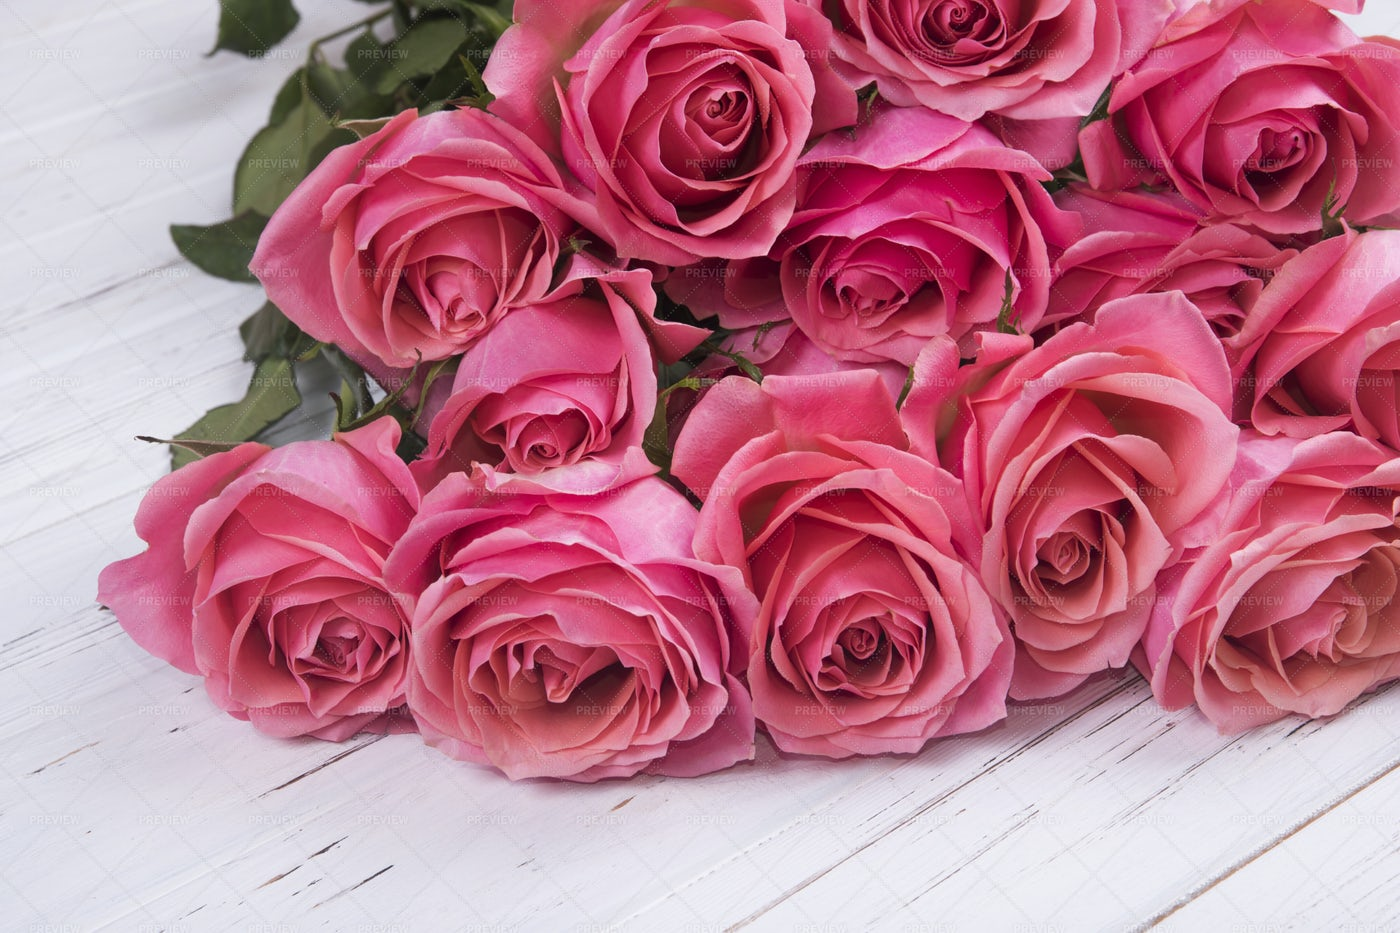 Bouquet Of Pink Roses: Stock Photos